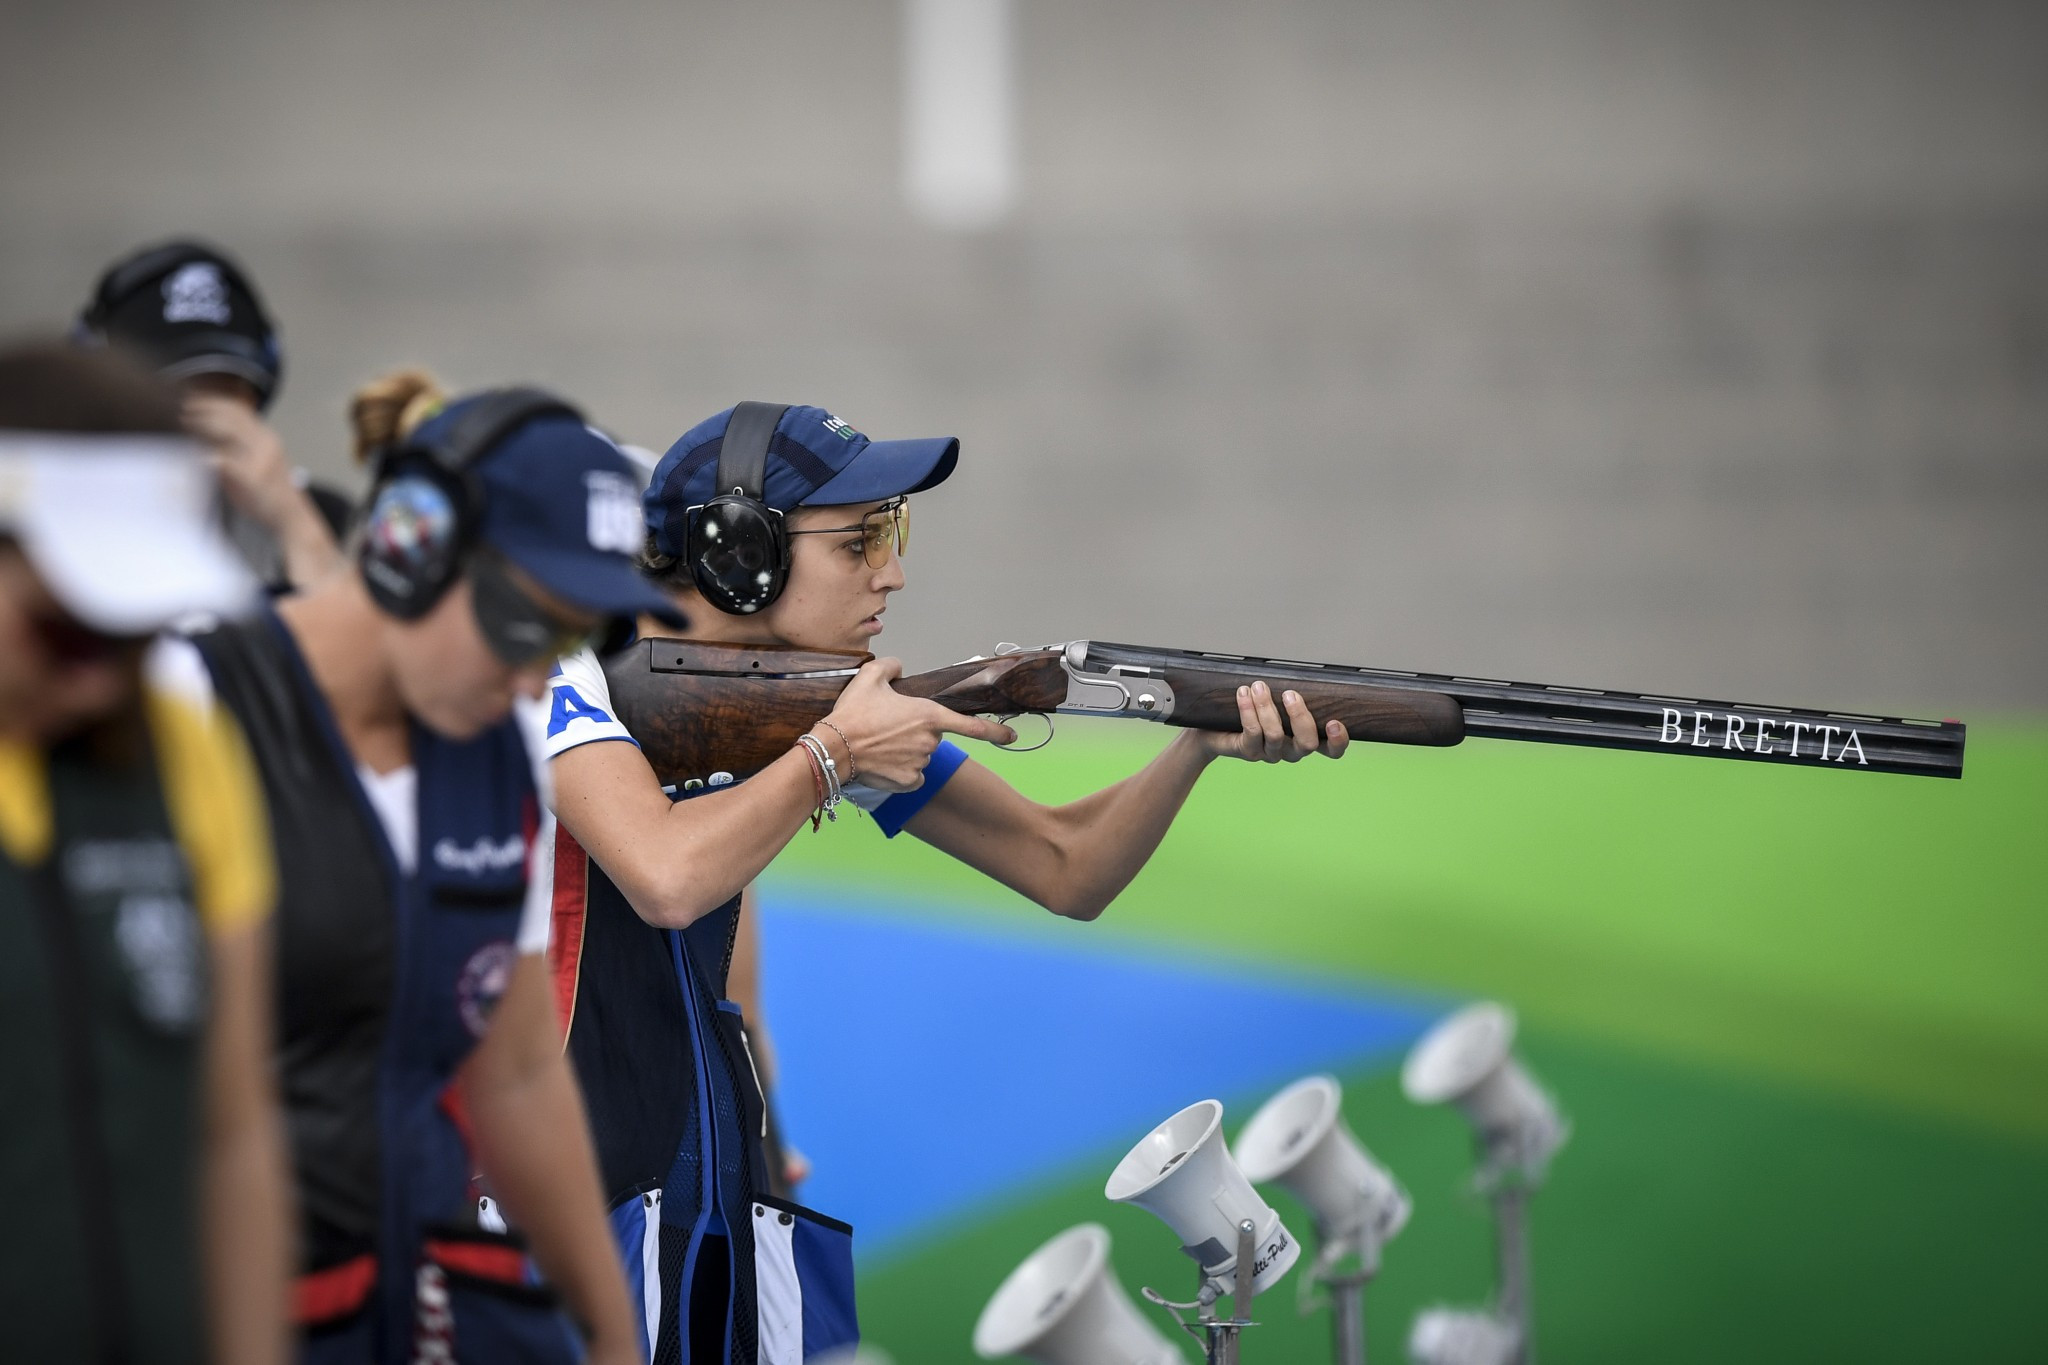 Former Olympic champion Rossi wins women's trap at ISSF Shotgun World Championships